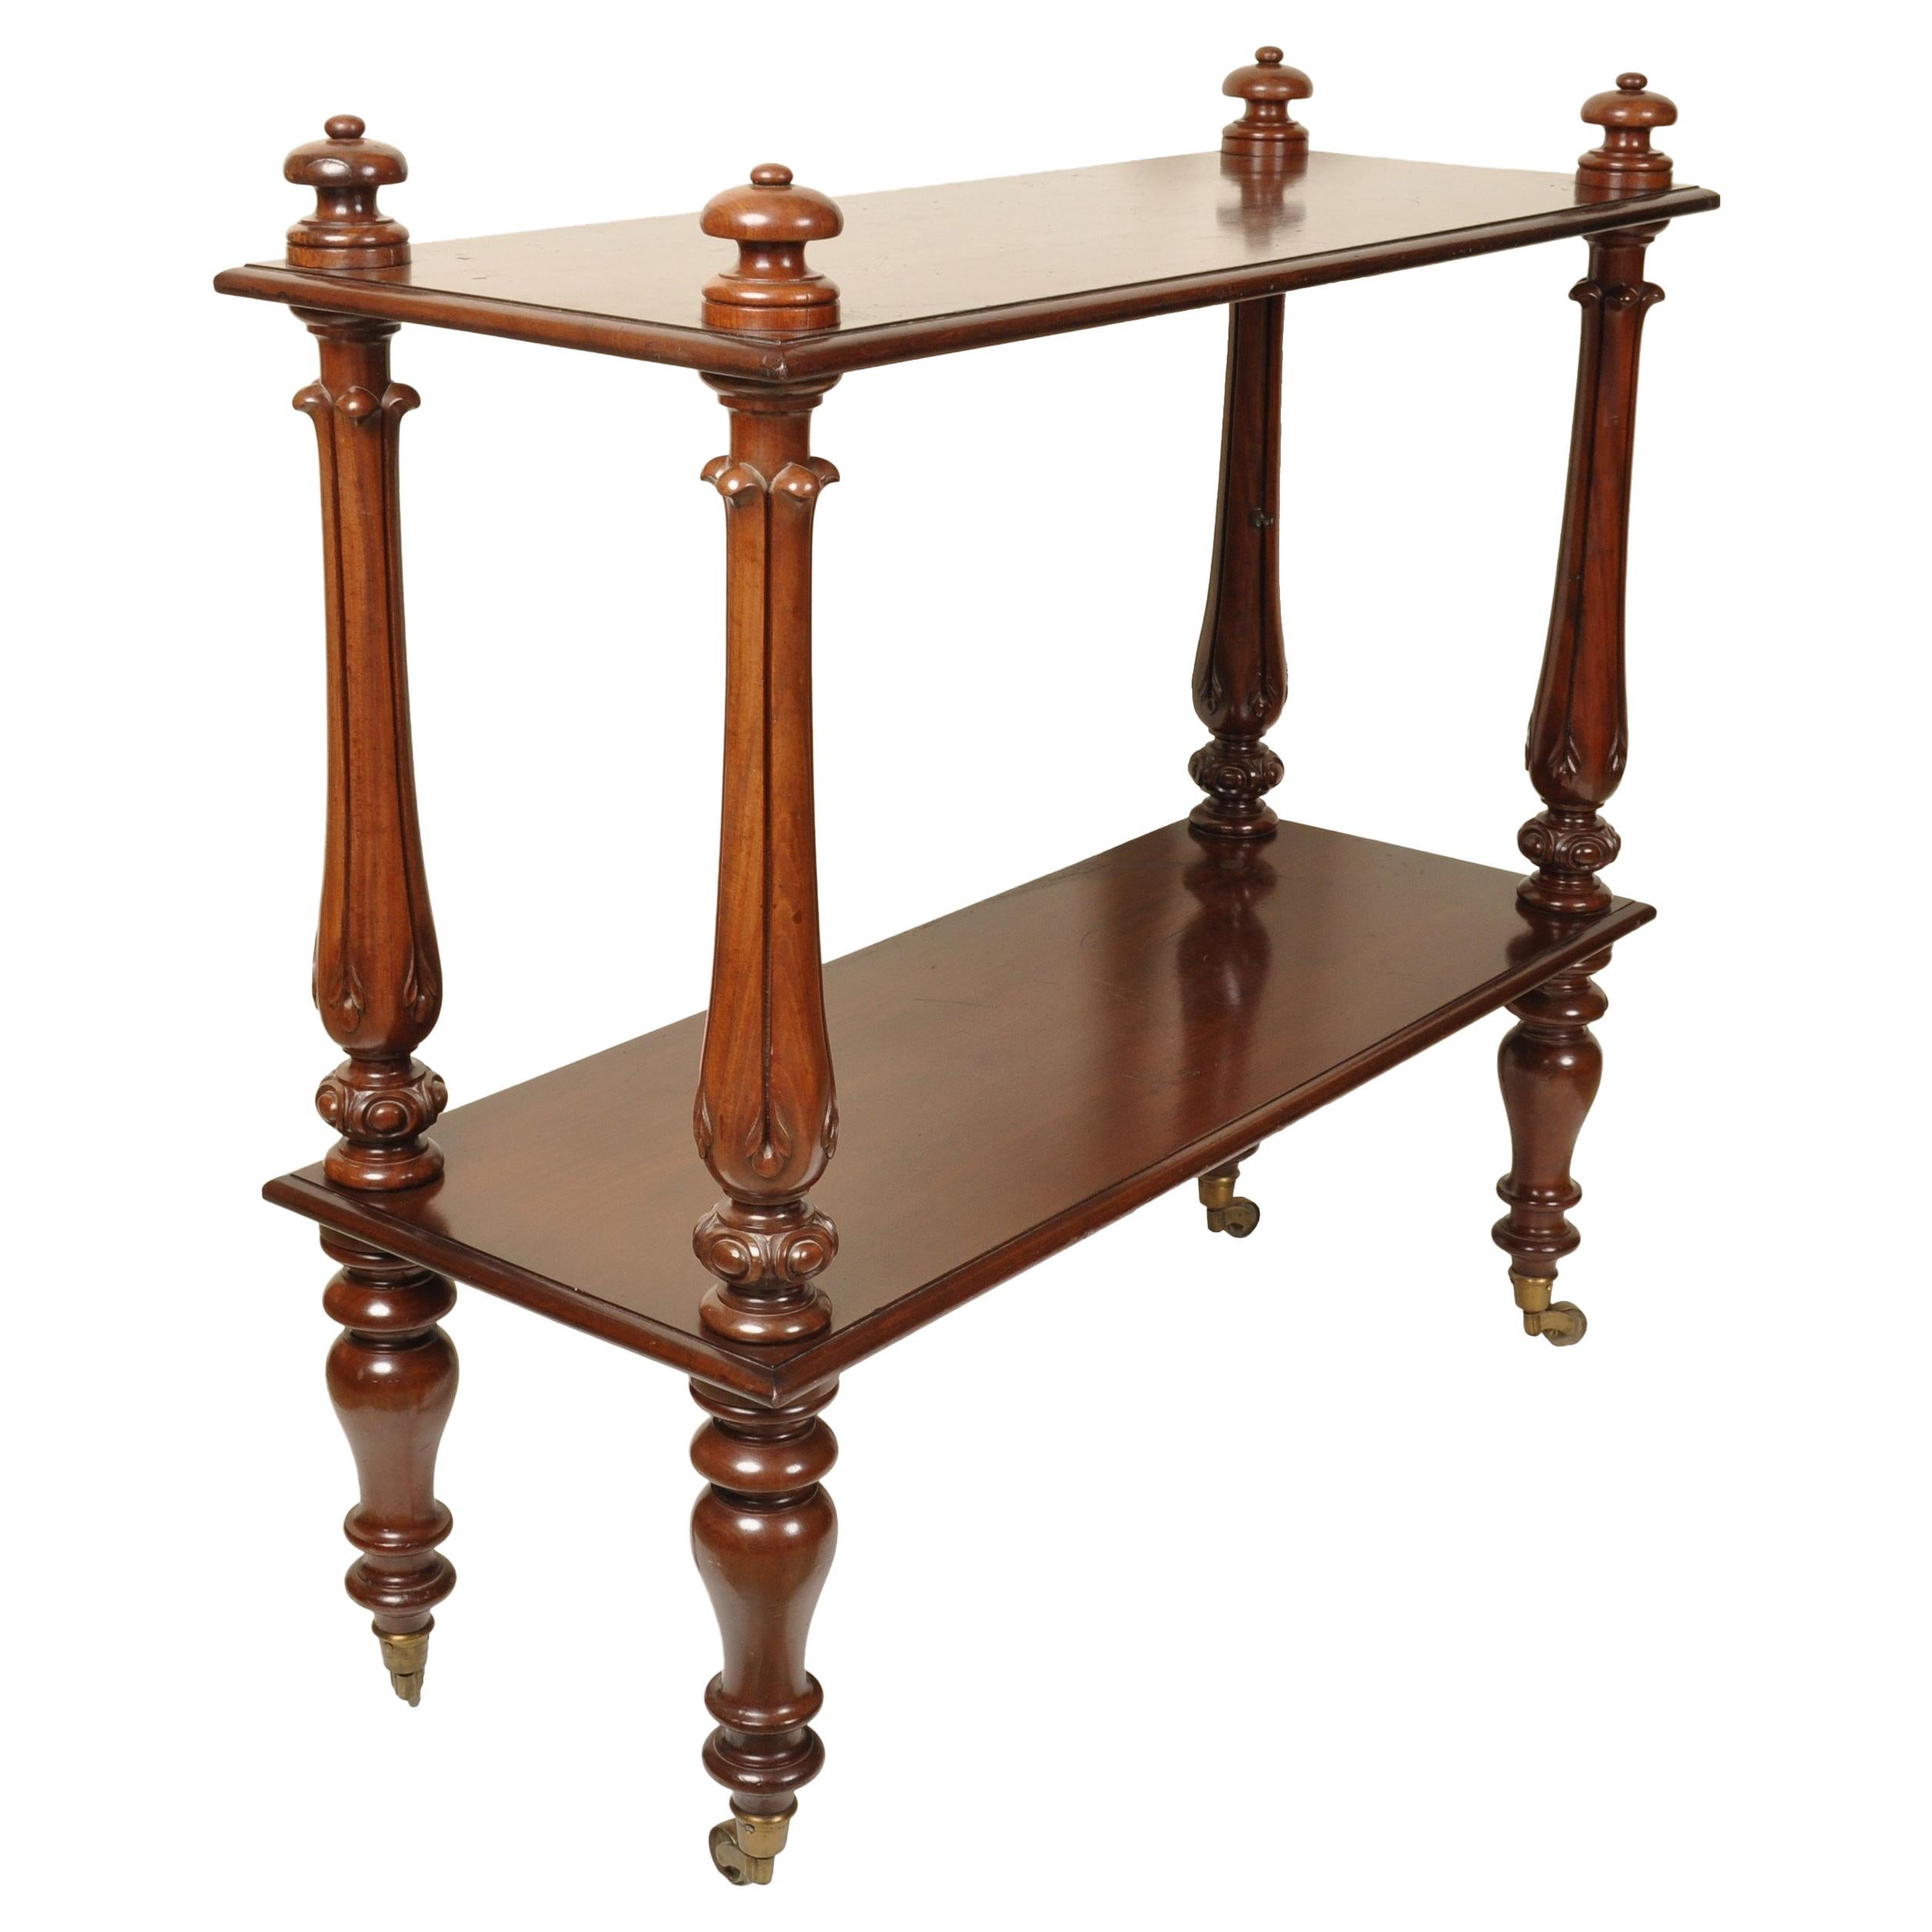 Antique William IV Mahogany Dumb-Waiter / Server / Table, circa 1830